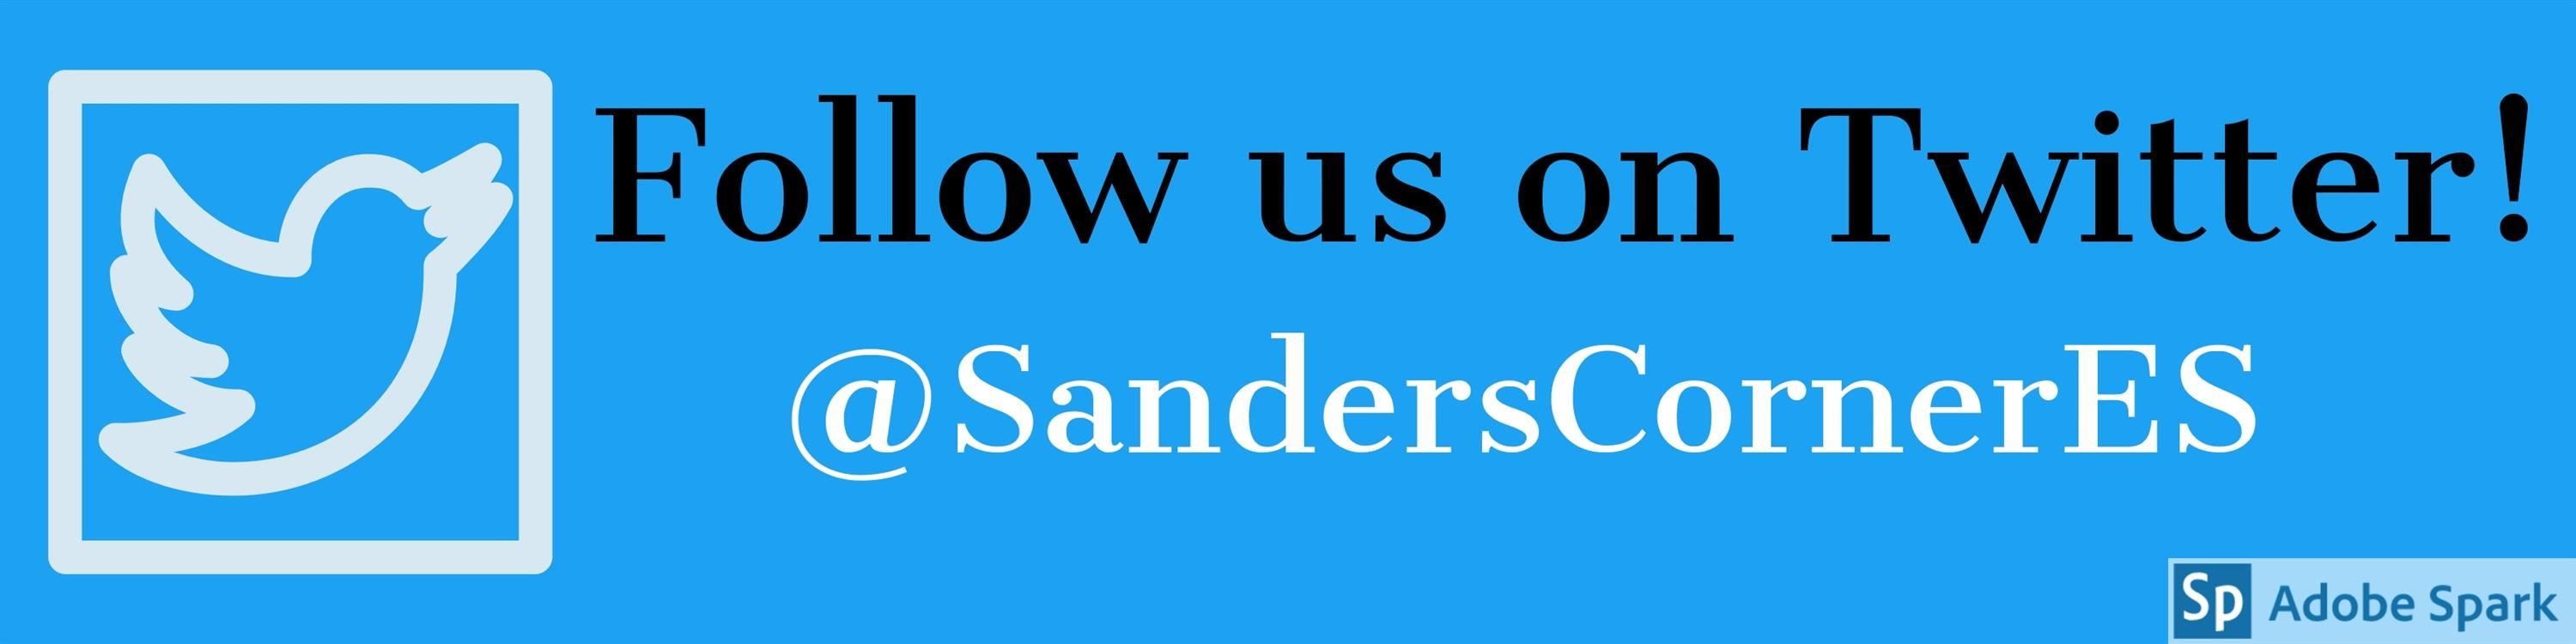 Follow us on Twitter! @SandersCornerES